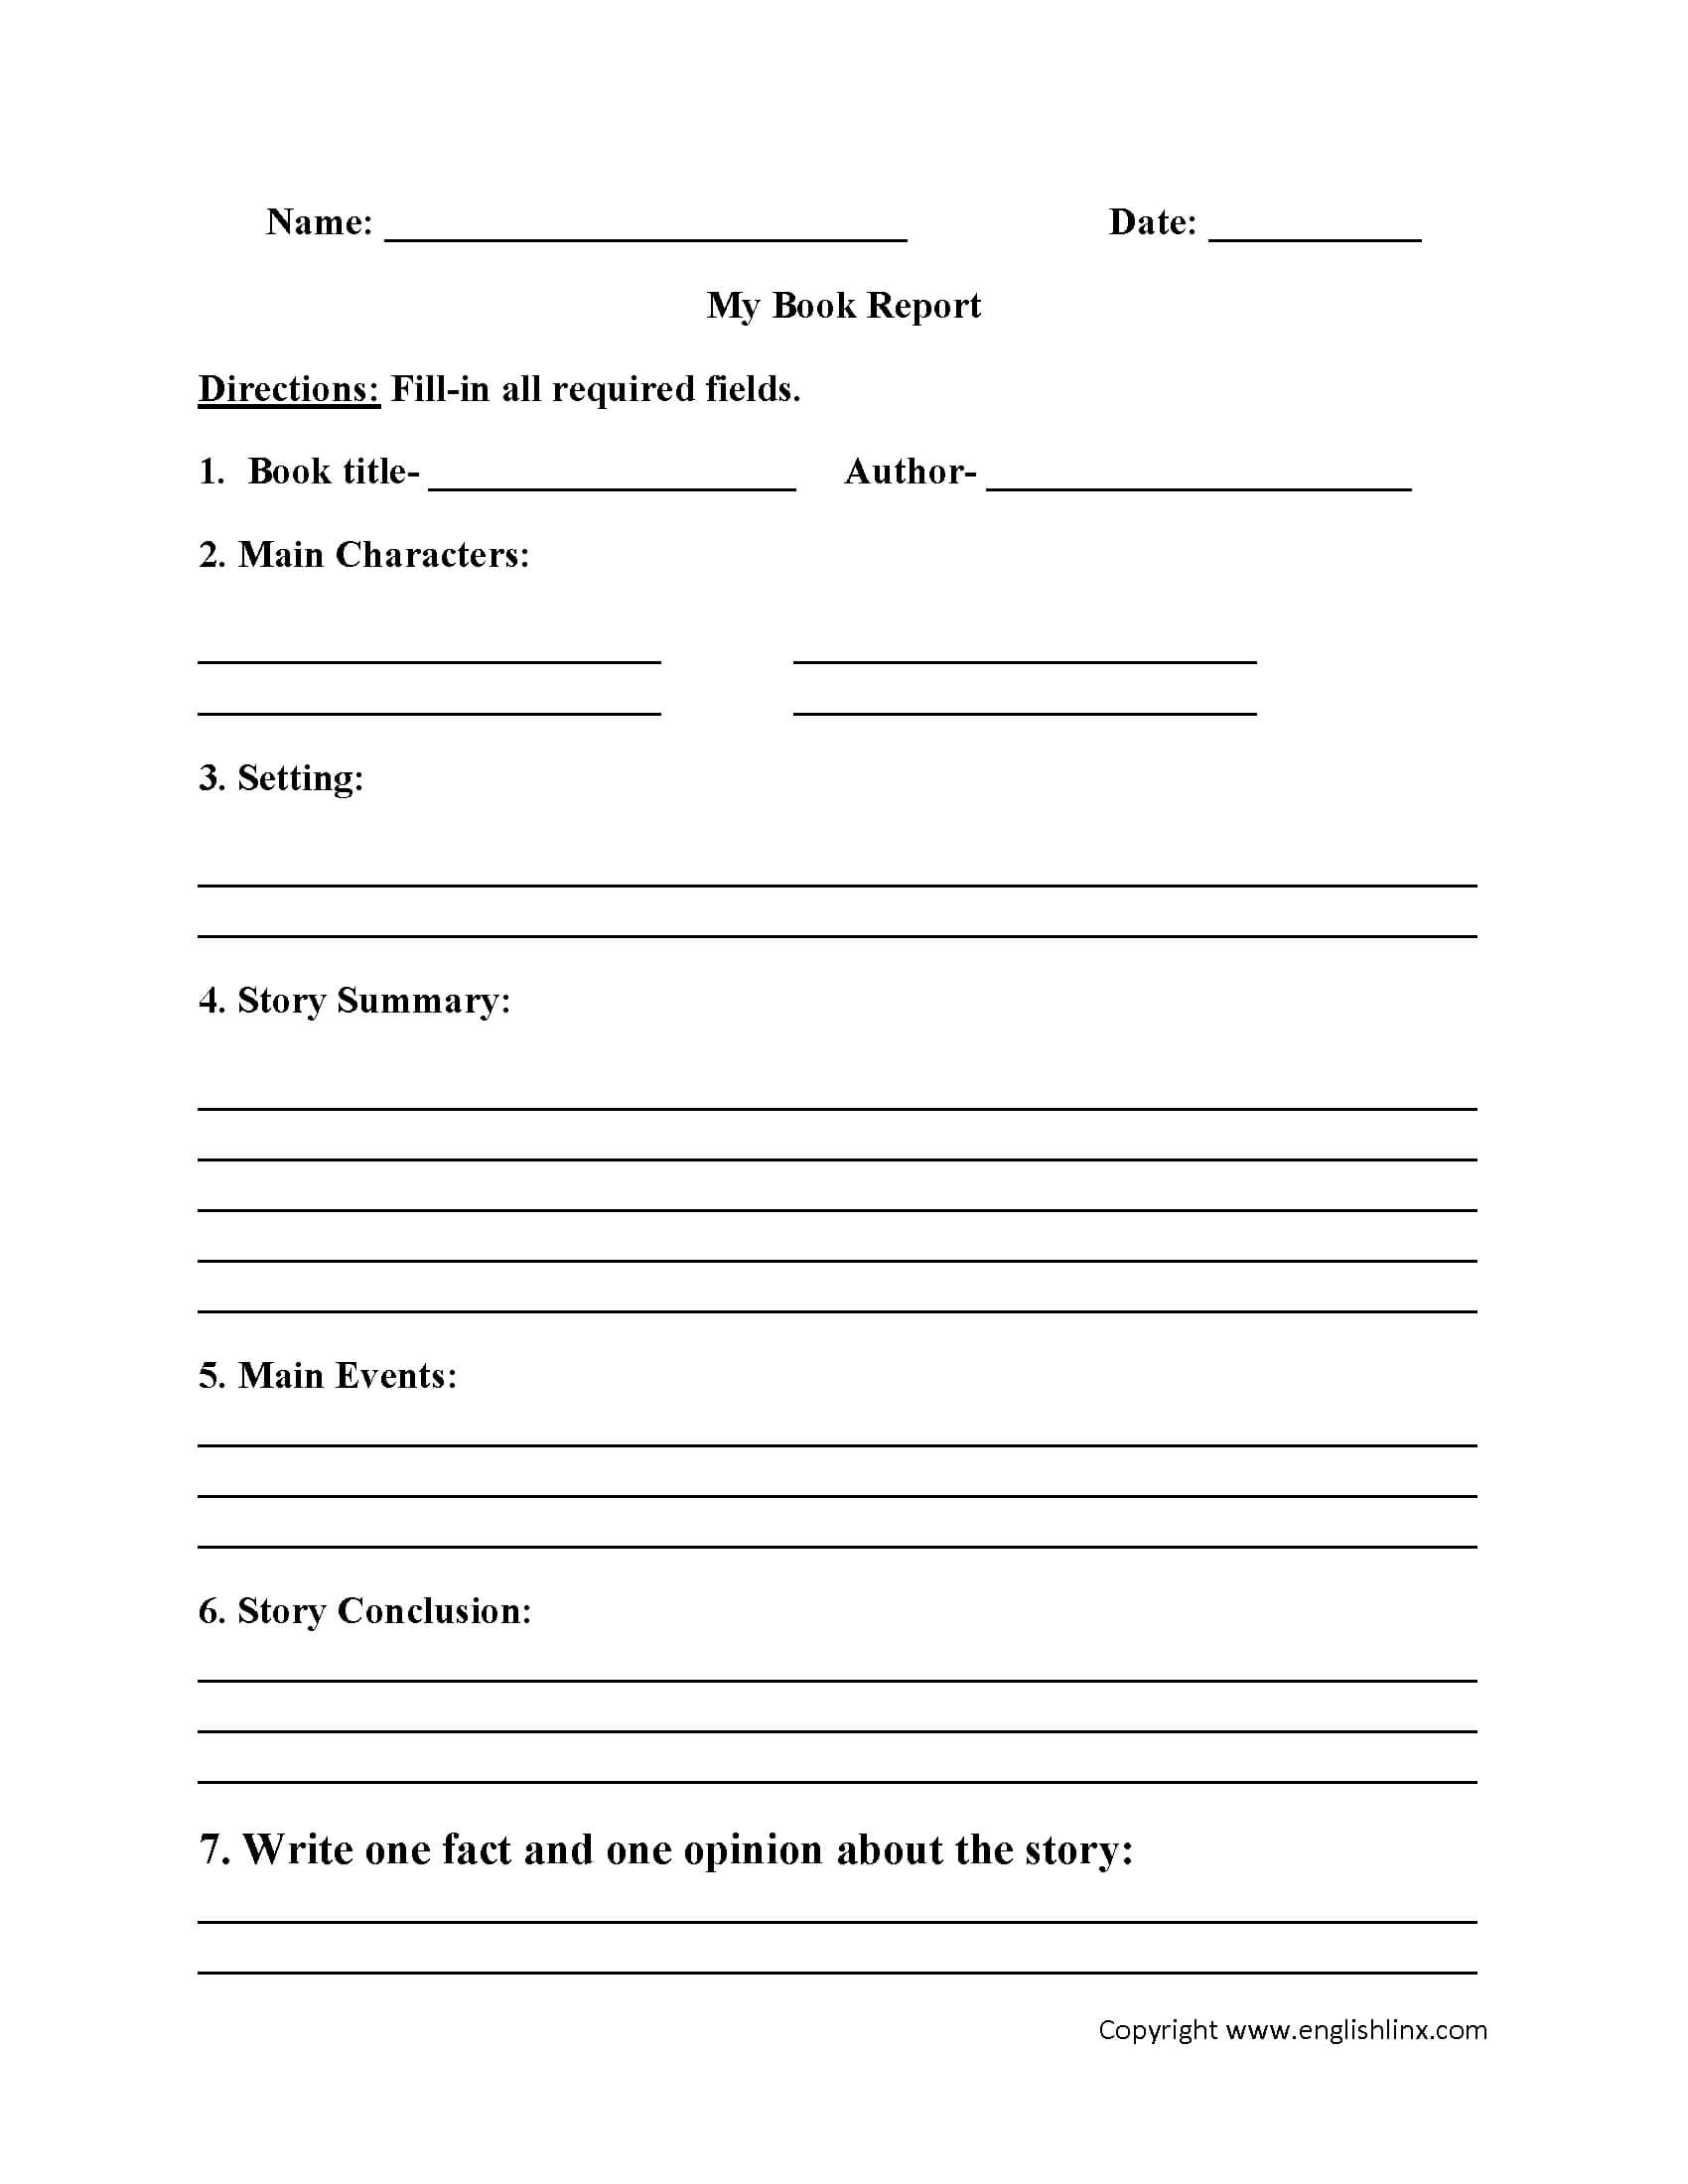 Englishlinx | Book Report Worksheets Throughout Book Report Template 5Th Grade